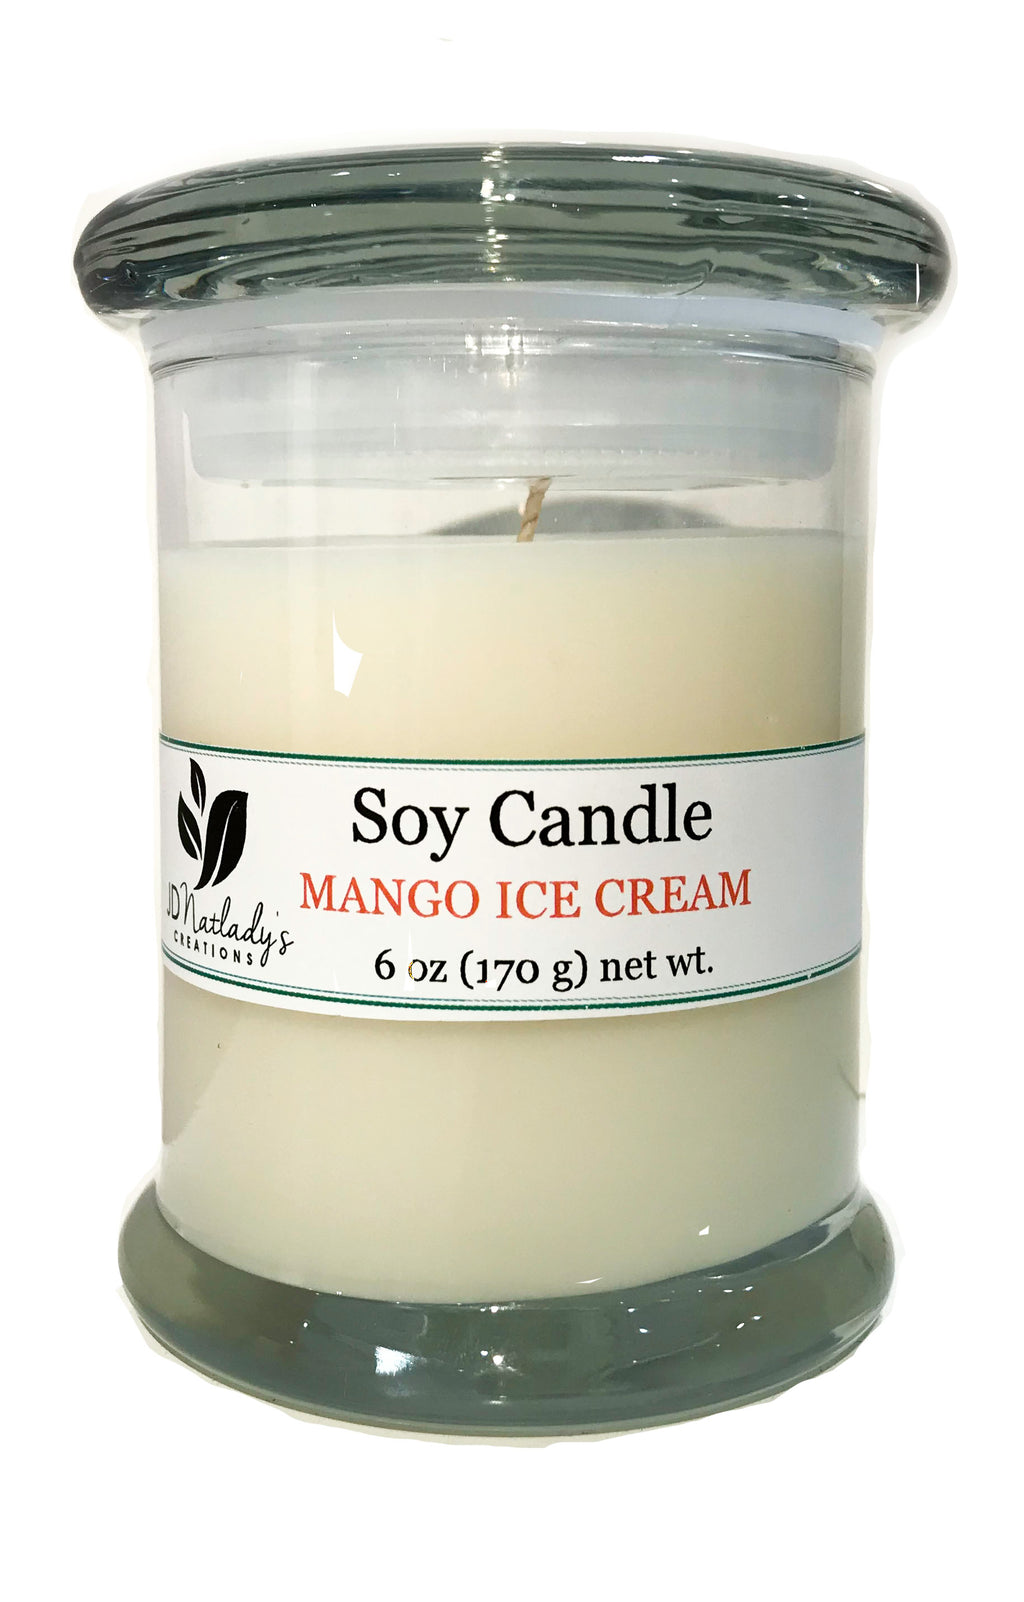 Mango Ice Cream Soy Candle